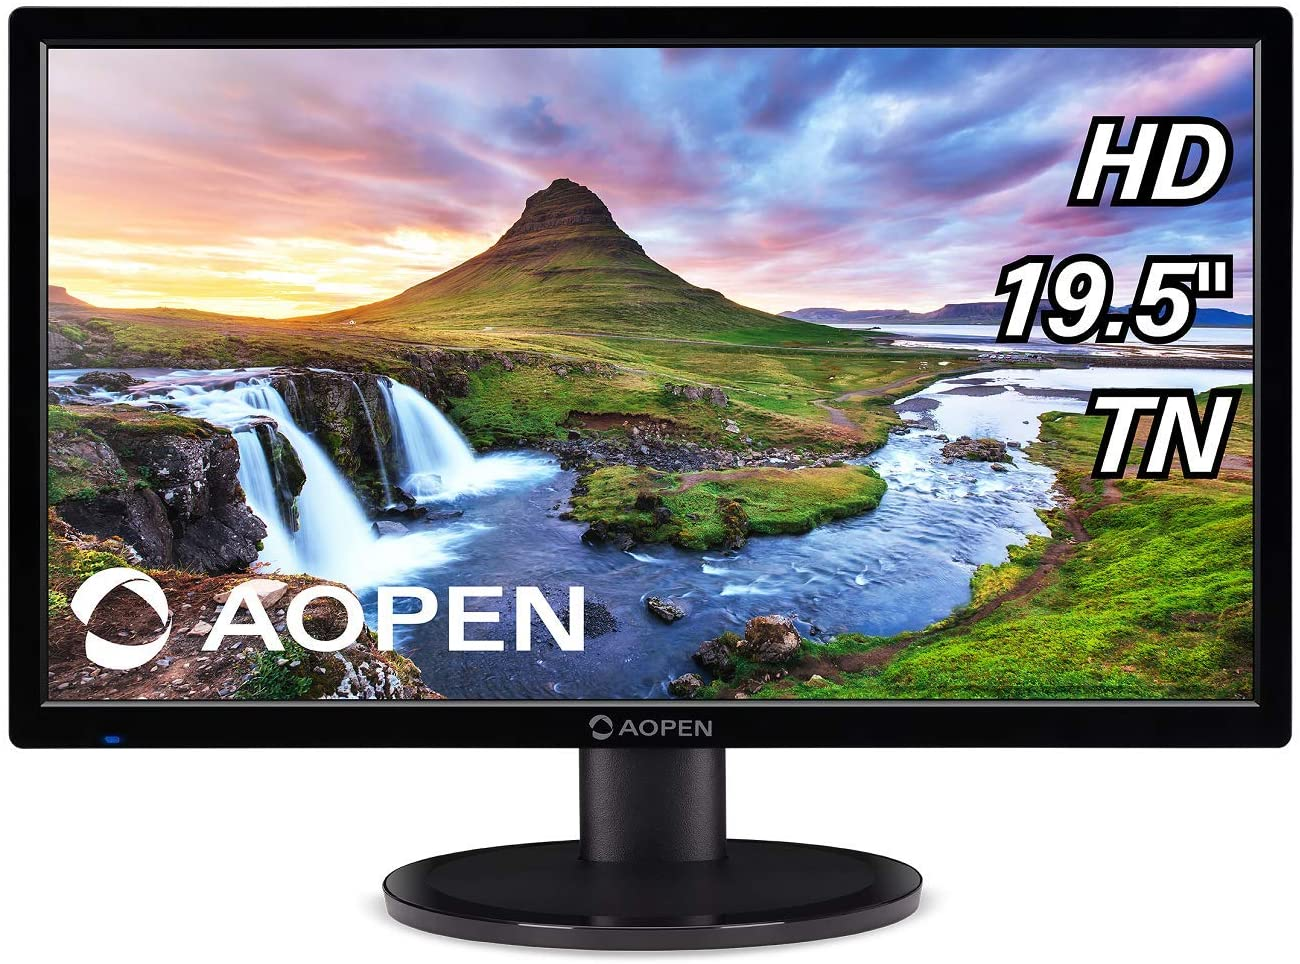 "AOPEN 20CH1Q bi 19.5"" HD (1366 x 768) TN Monitor for Work or Home (1 x HDMI & VGA Port), Black"